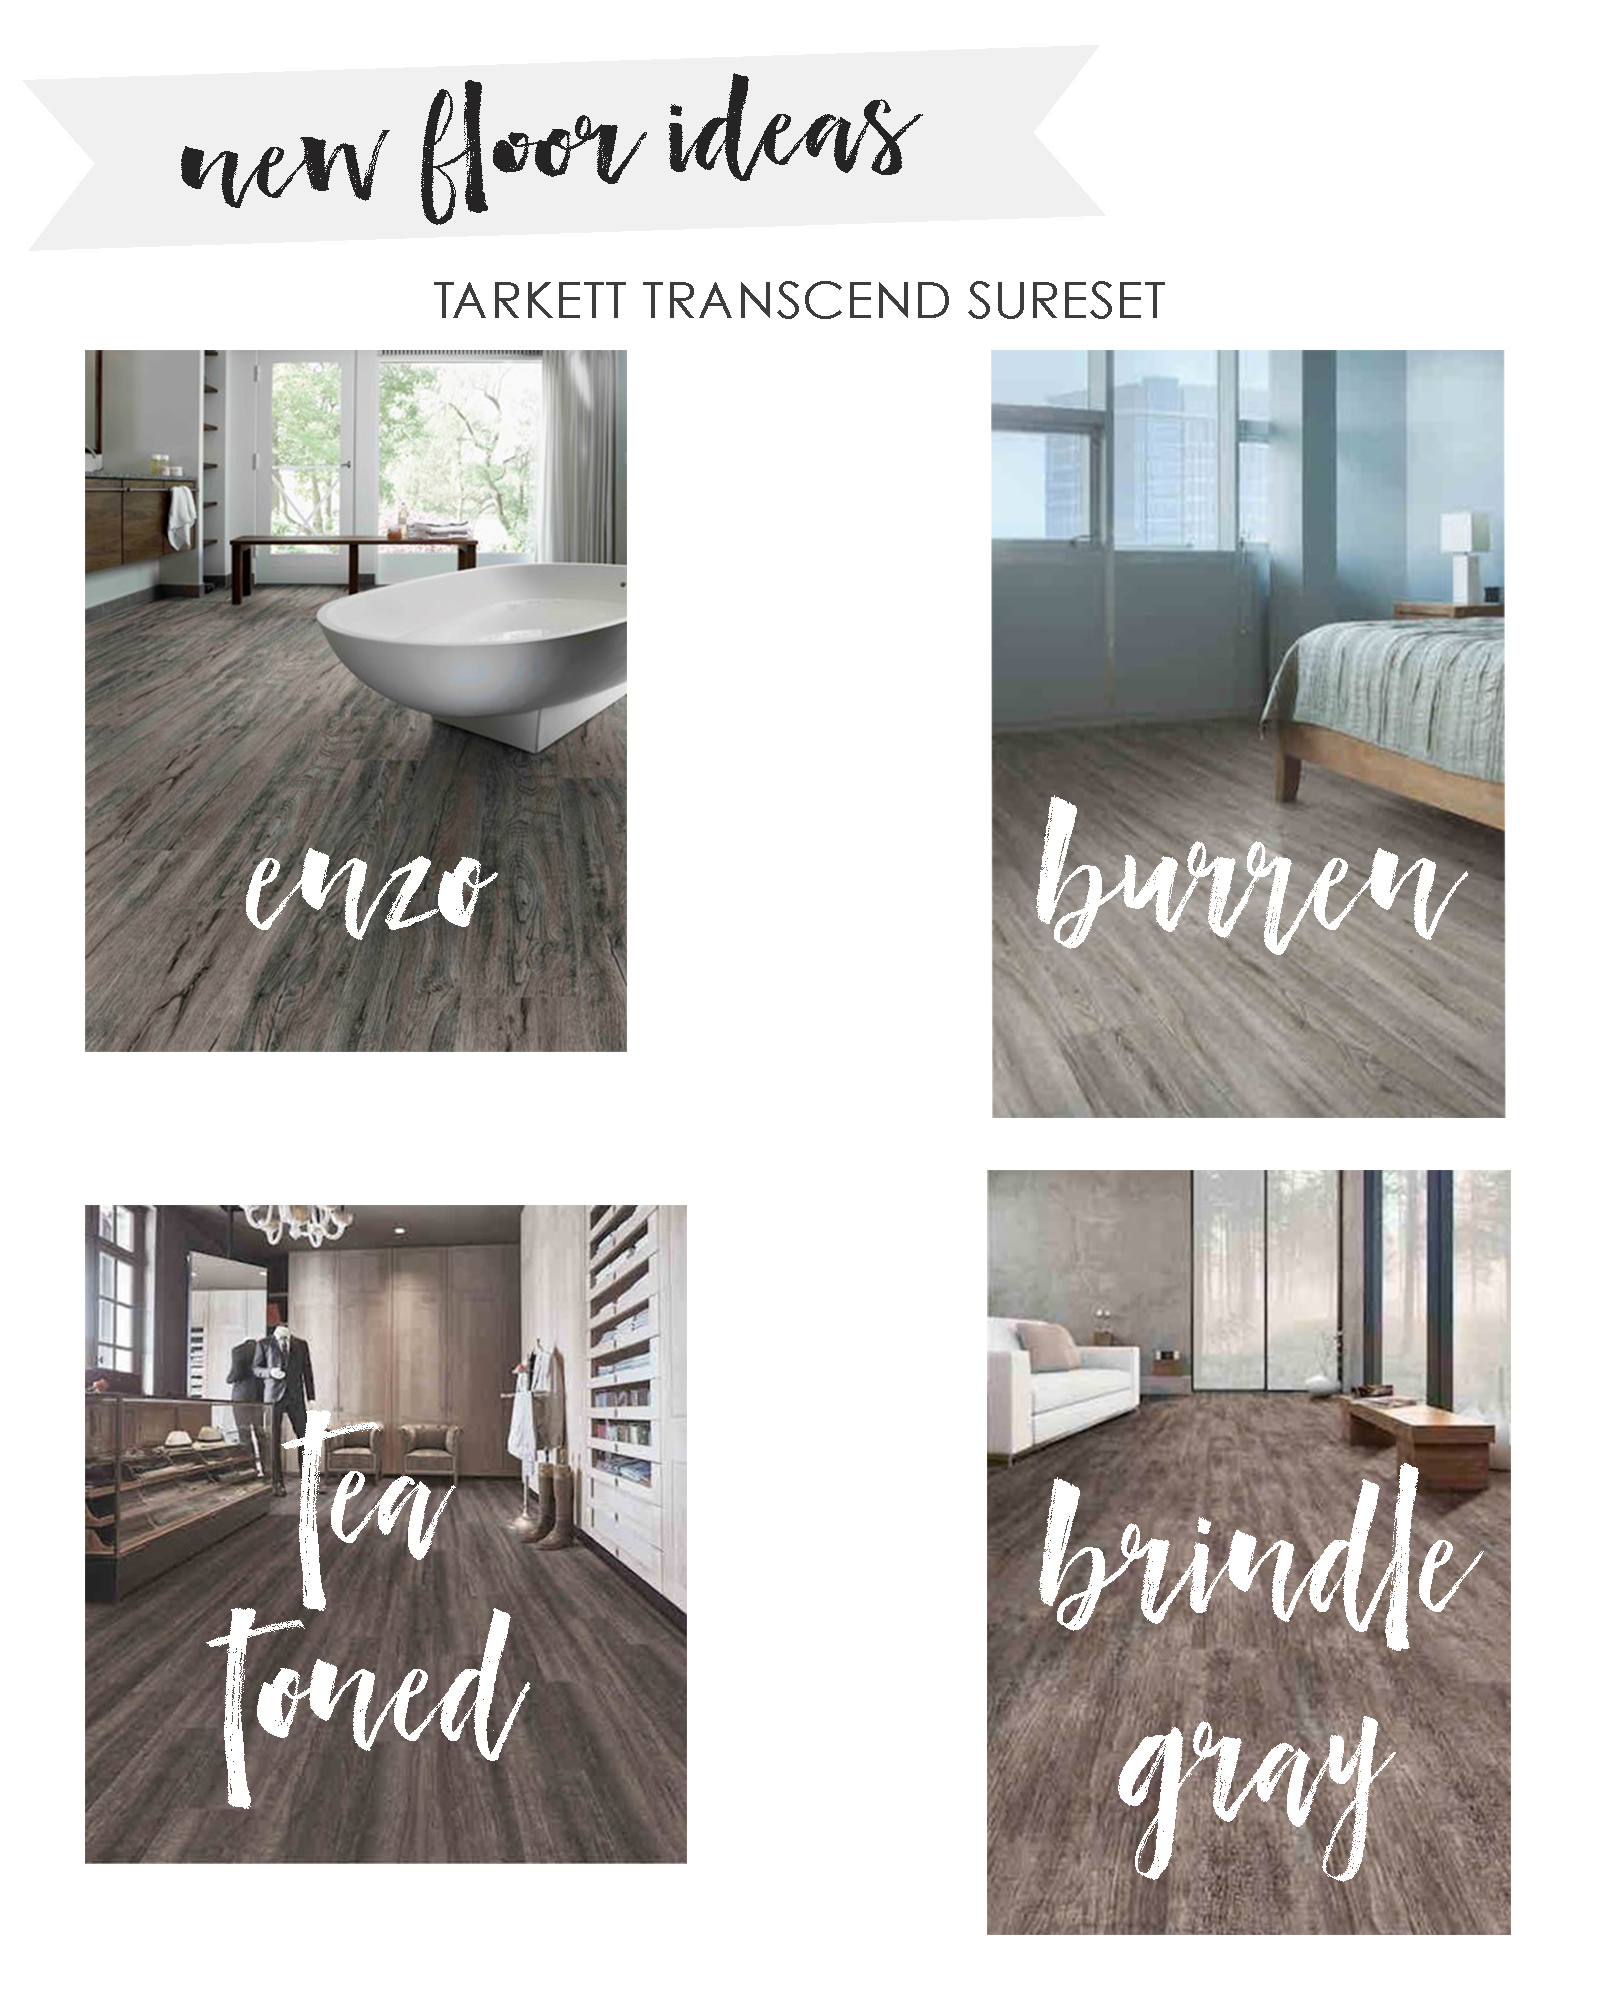 Vinyl Plank Flooring See Which Style We Chose And Why